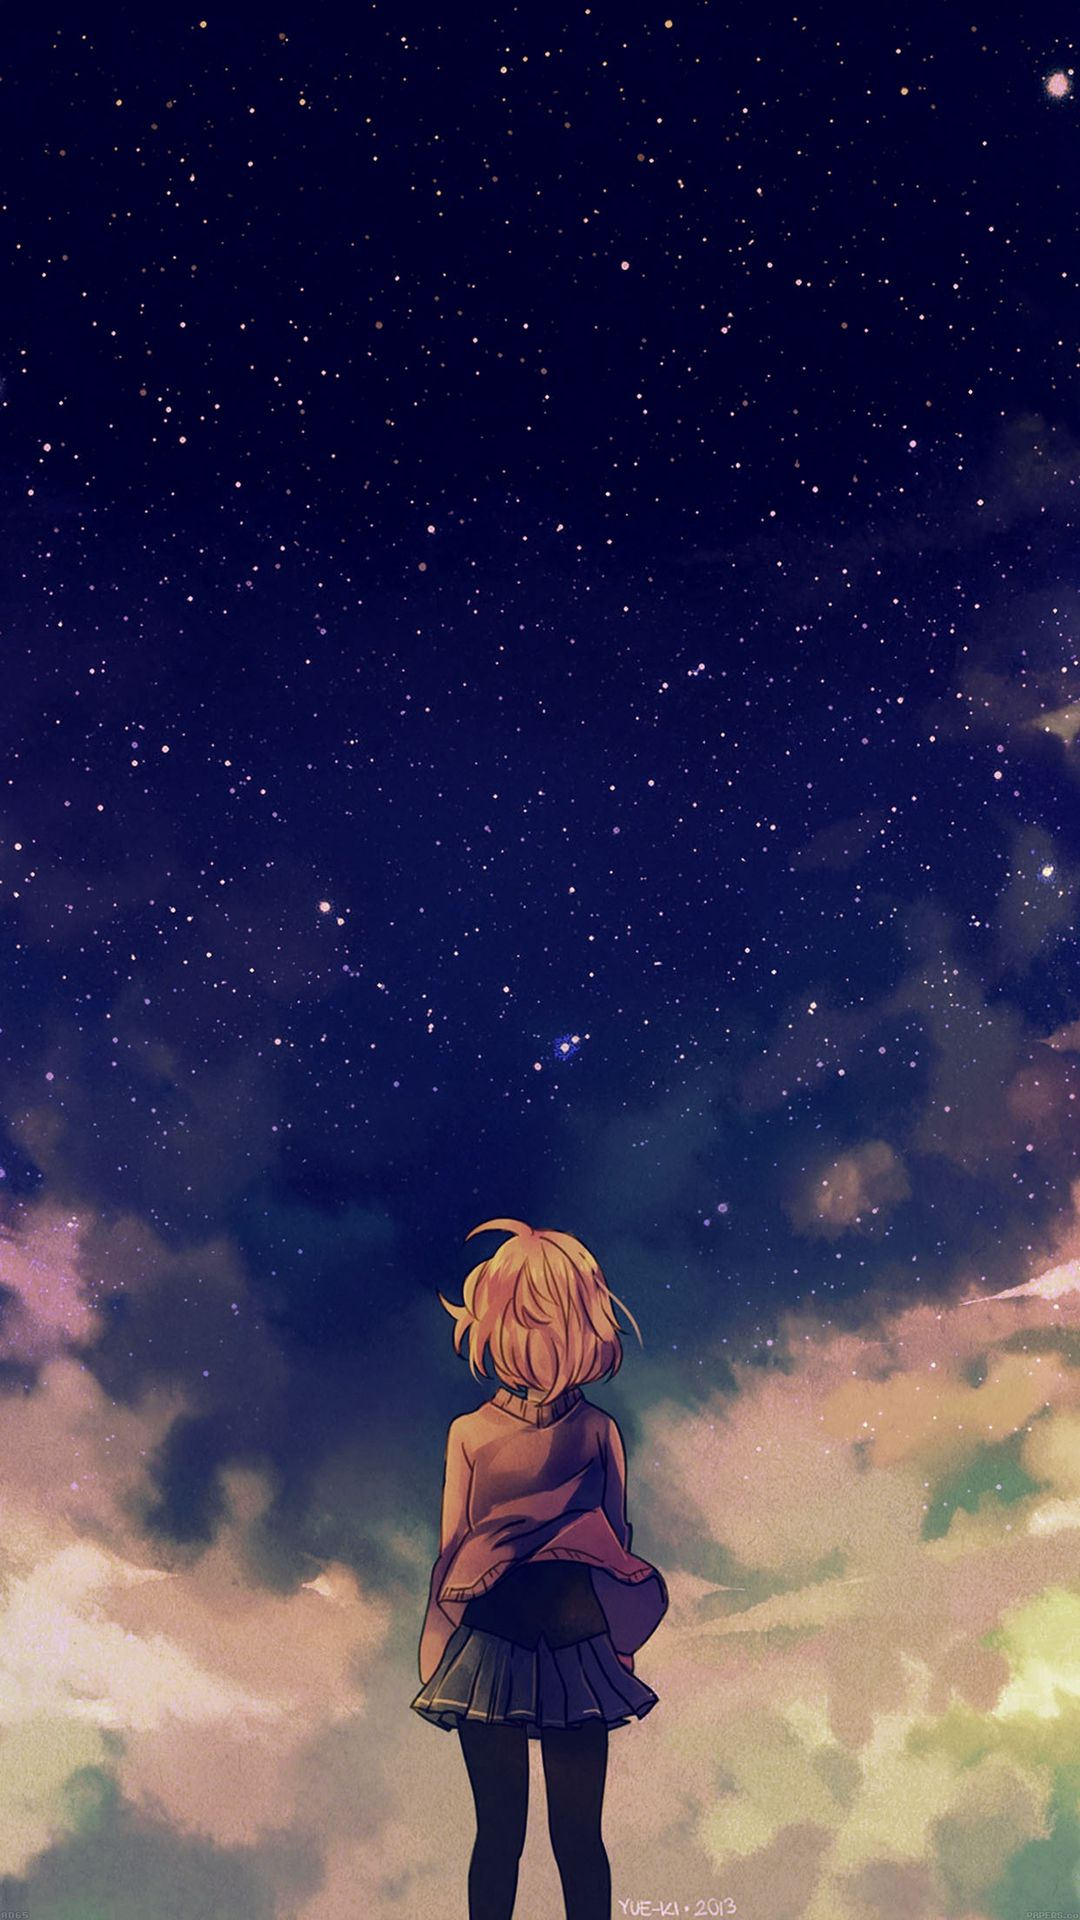 Anime Iphone Wallpapers Top Free Anime Iphone Backgrounds